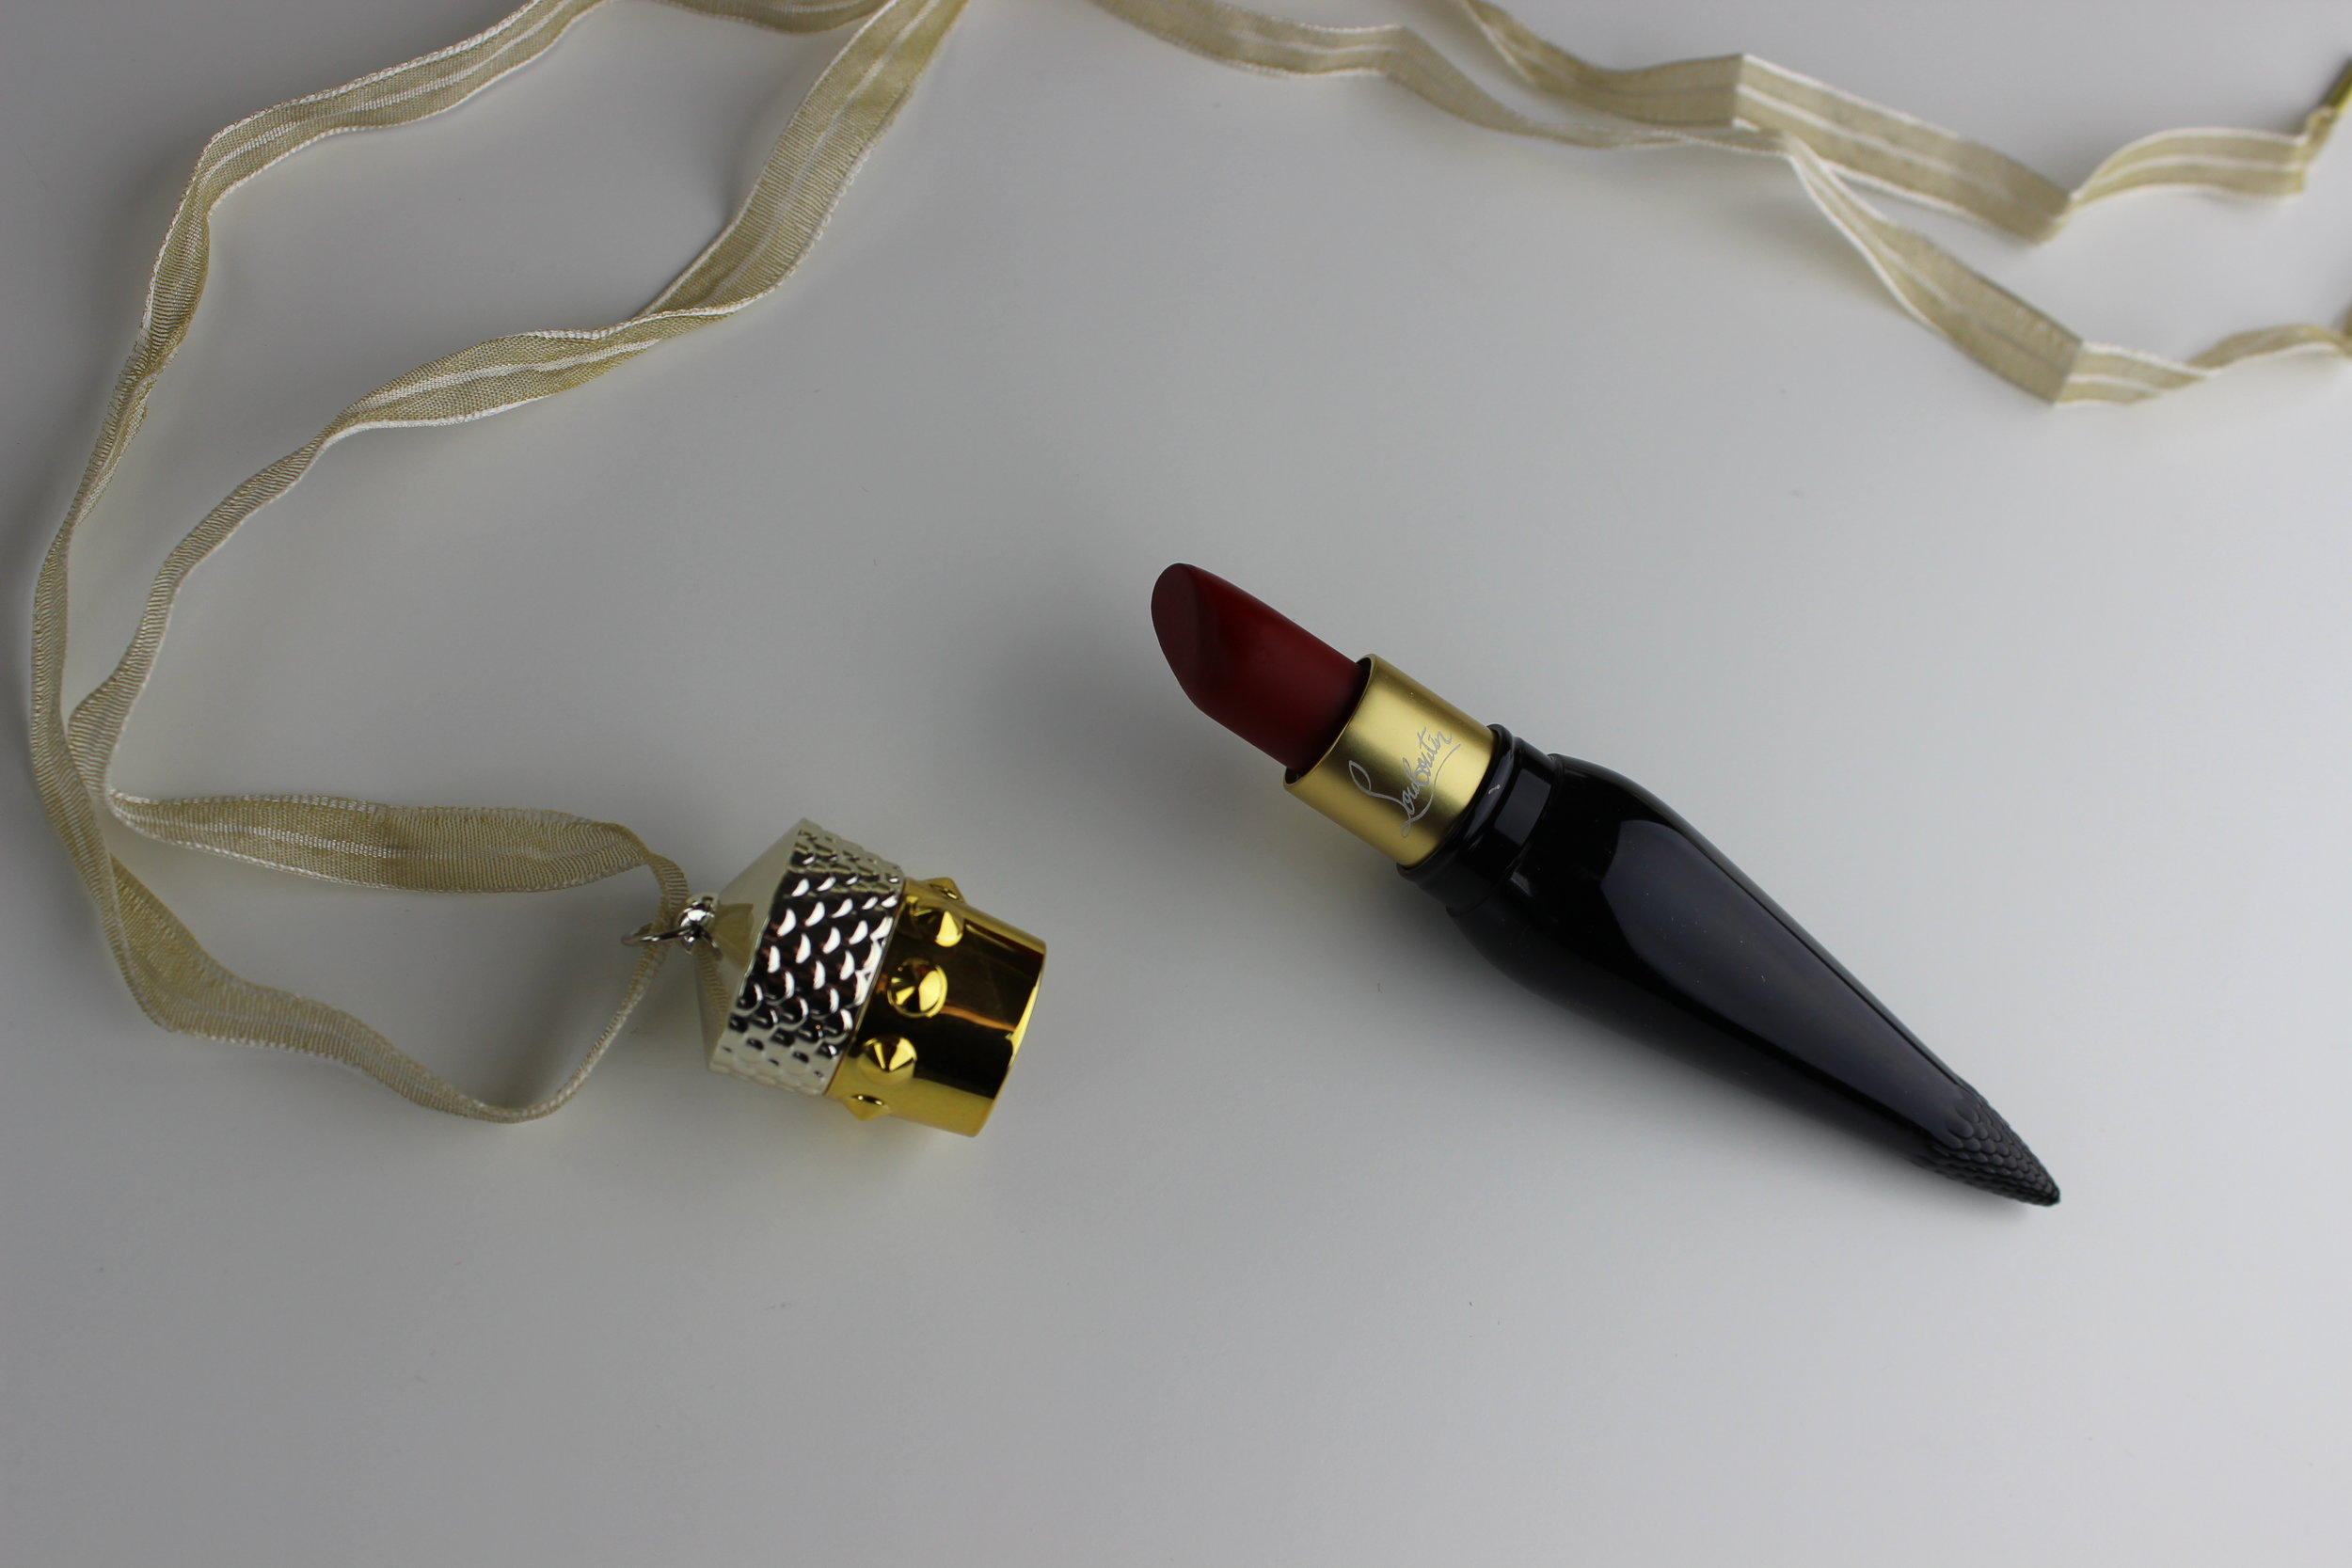 Christian Louboutin Velvet Matte Lip Colour in Rouge Louboutin